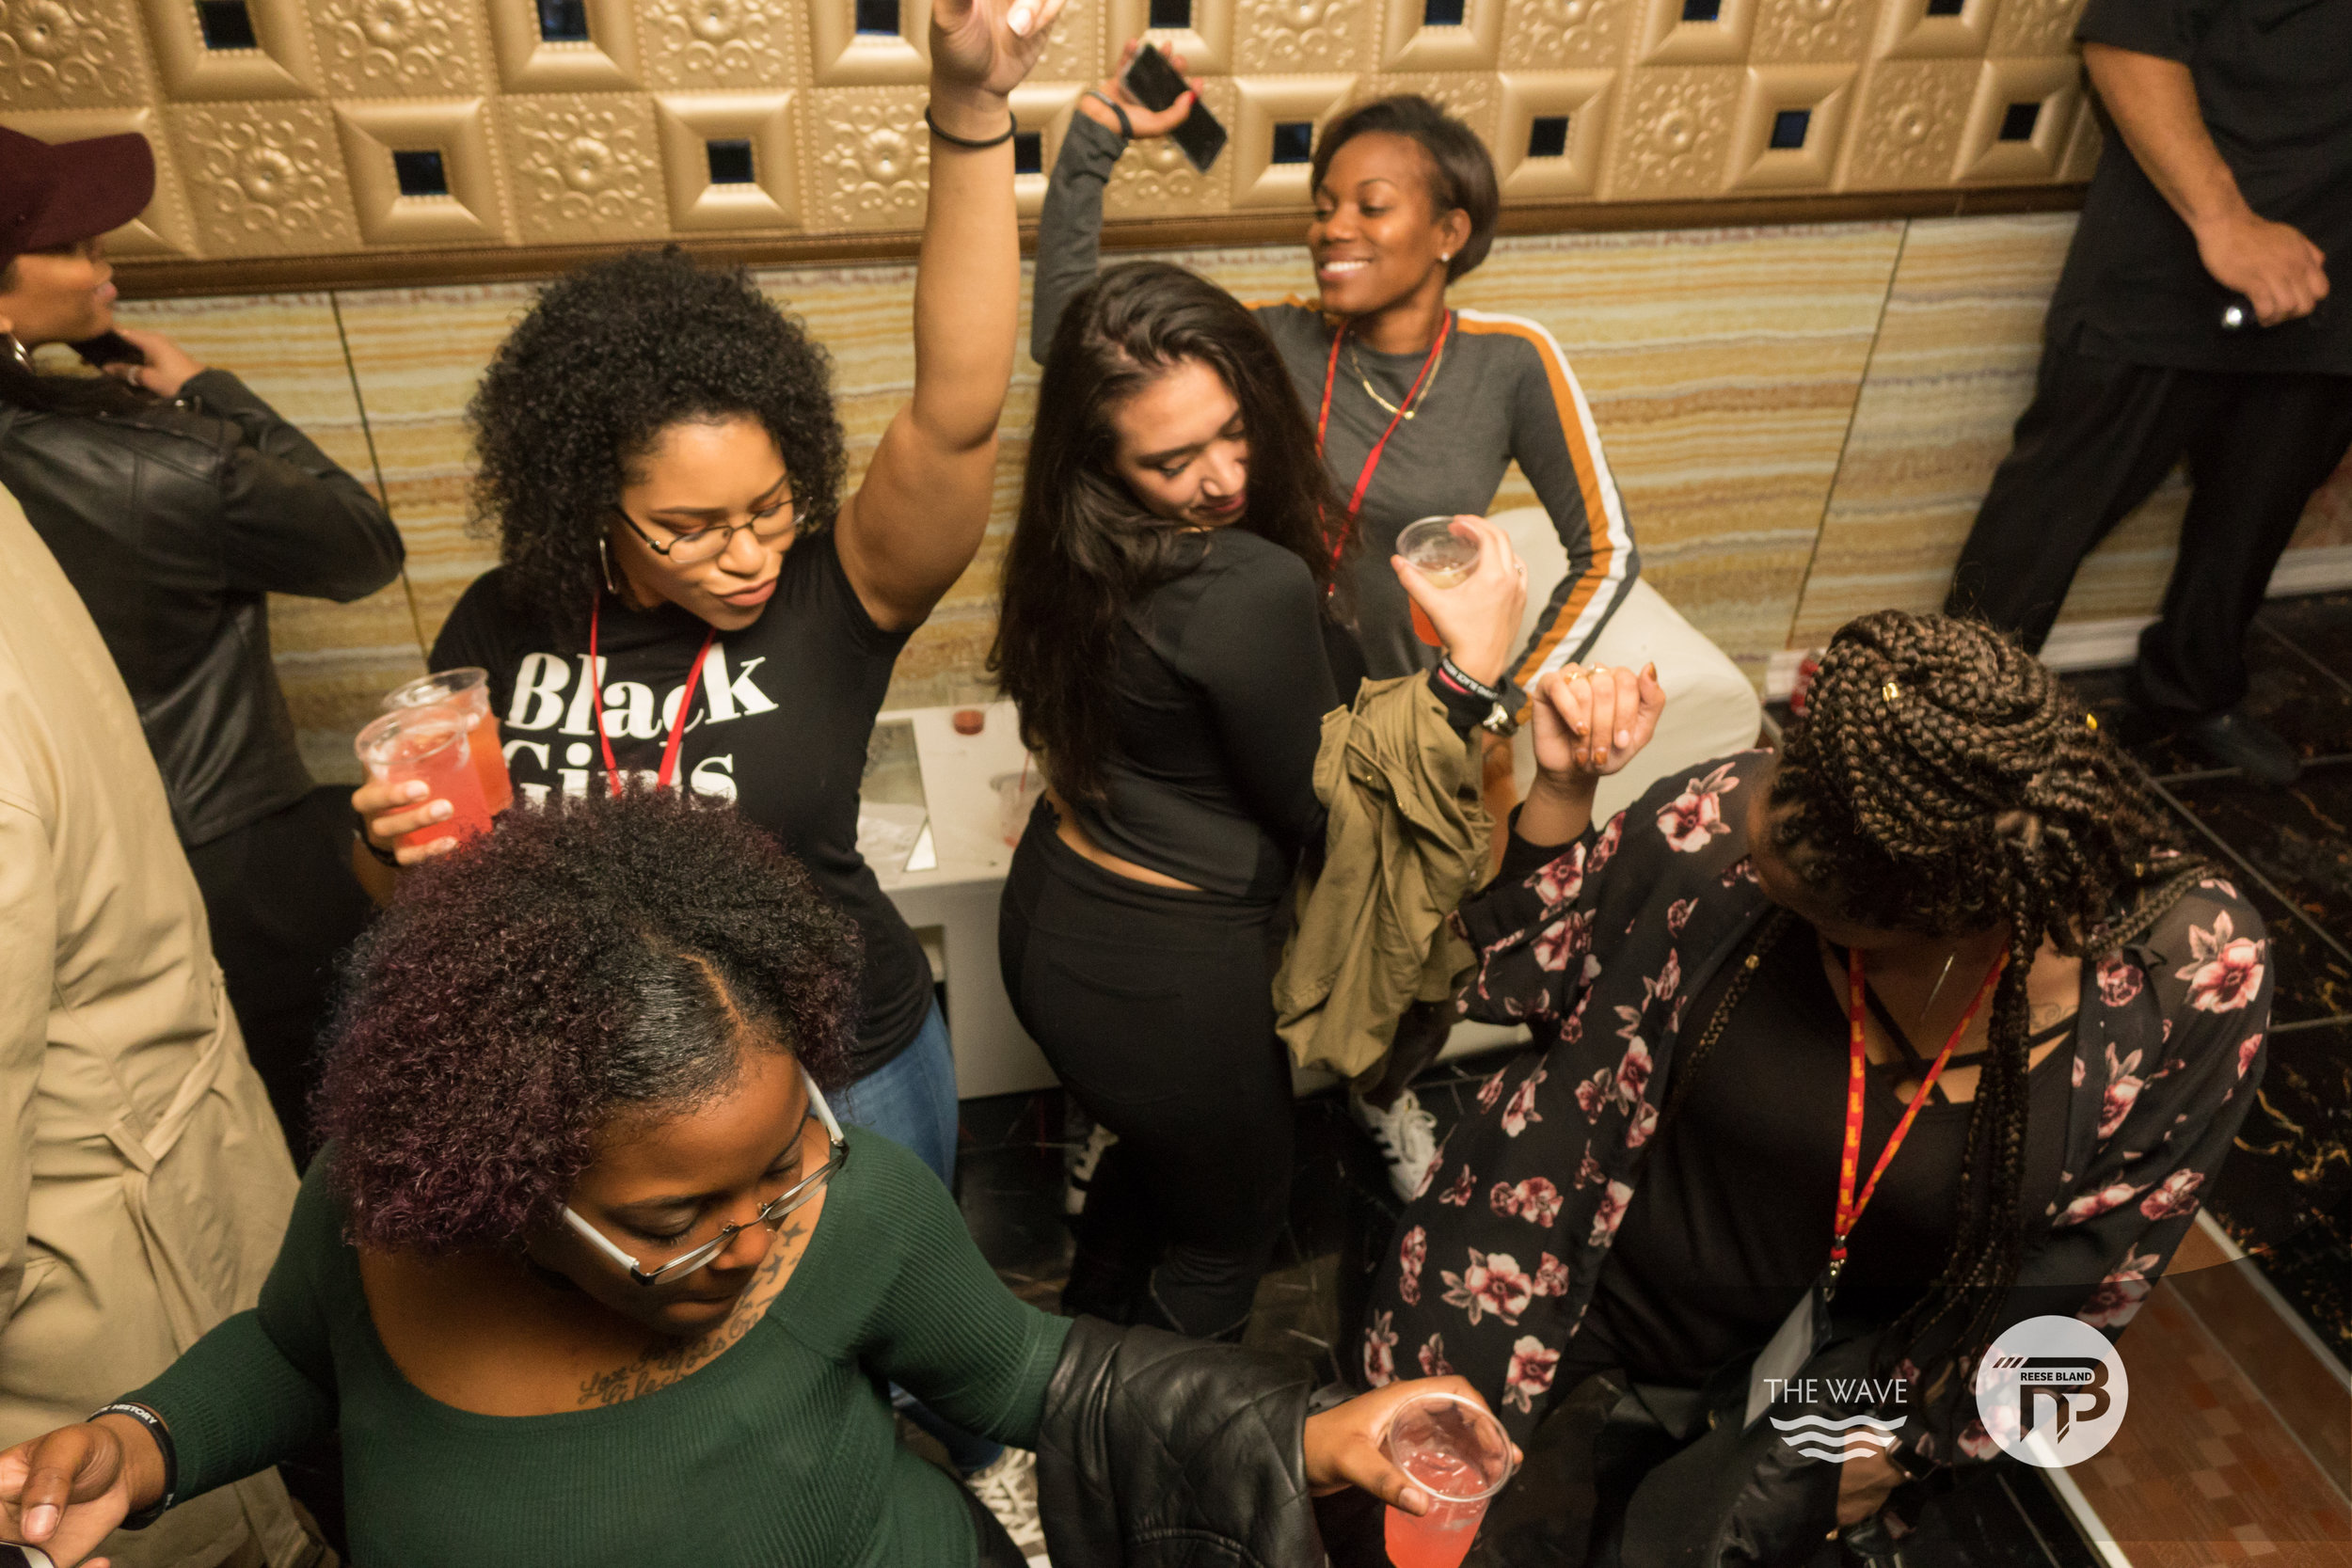 WaveDC-BlackBarCrawl-2-2018-06987.jpg